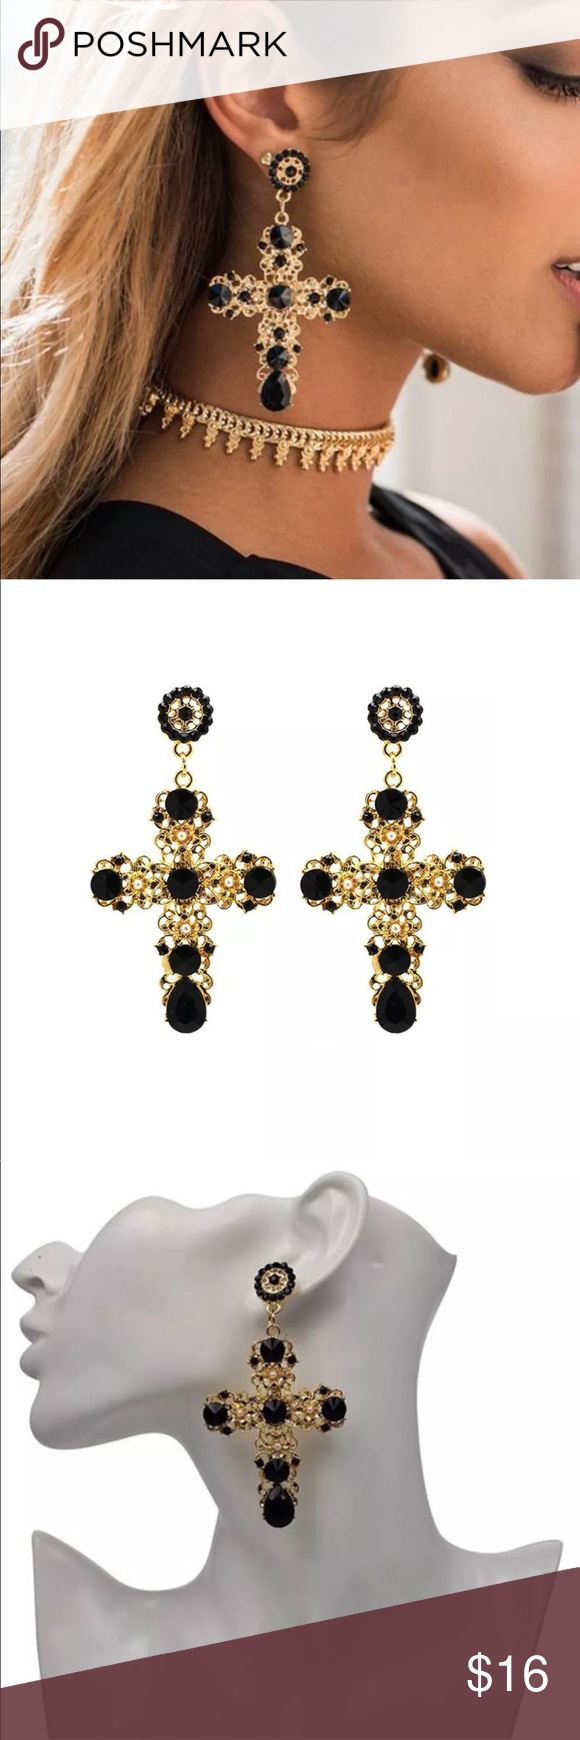 Spotted While Ping On Poshmark New Item Oversized Black Gold Cross Earrings Fashion Style Jewelry